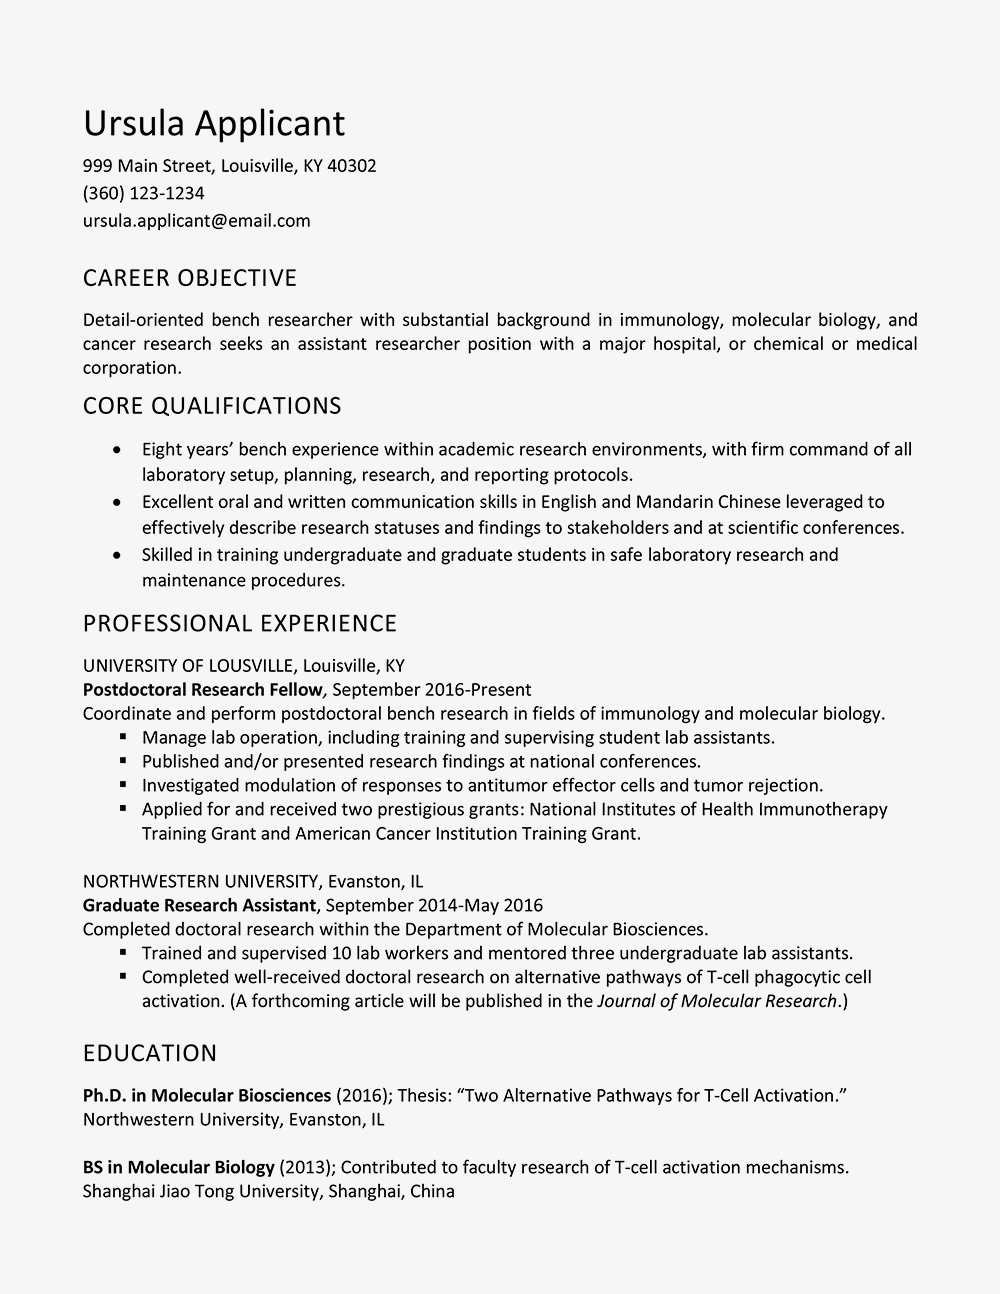 Research Assistant Resume Job Description And Skills